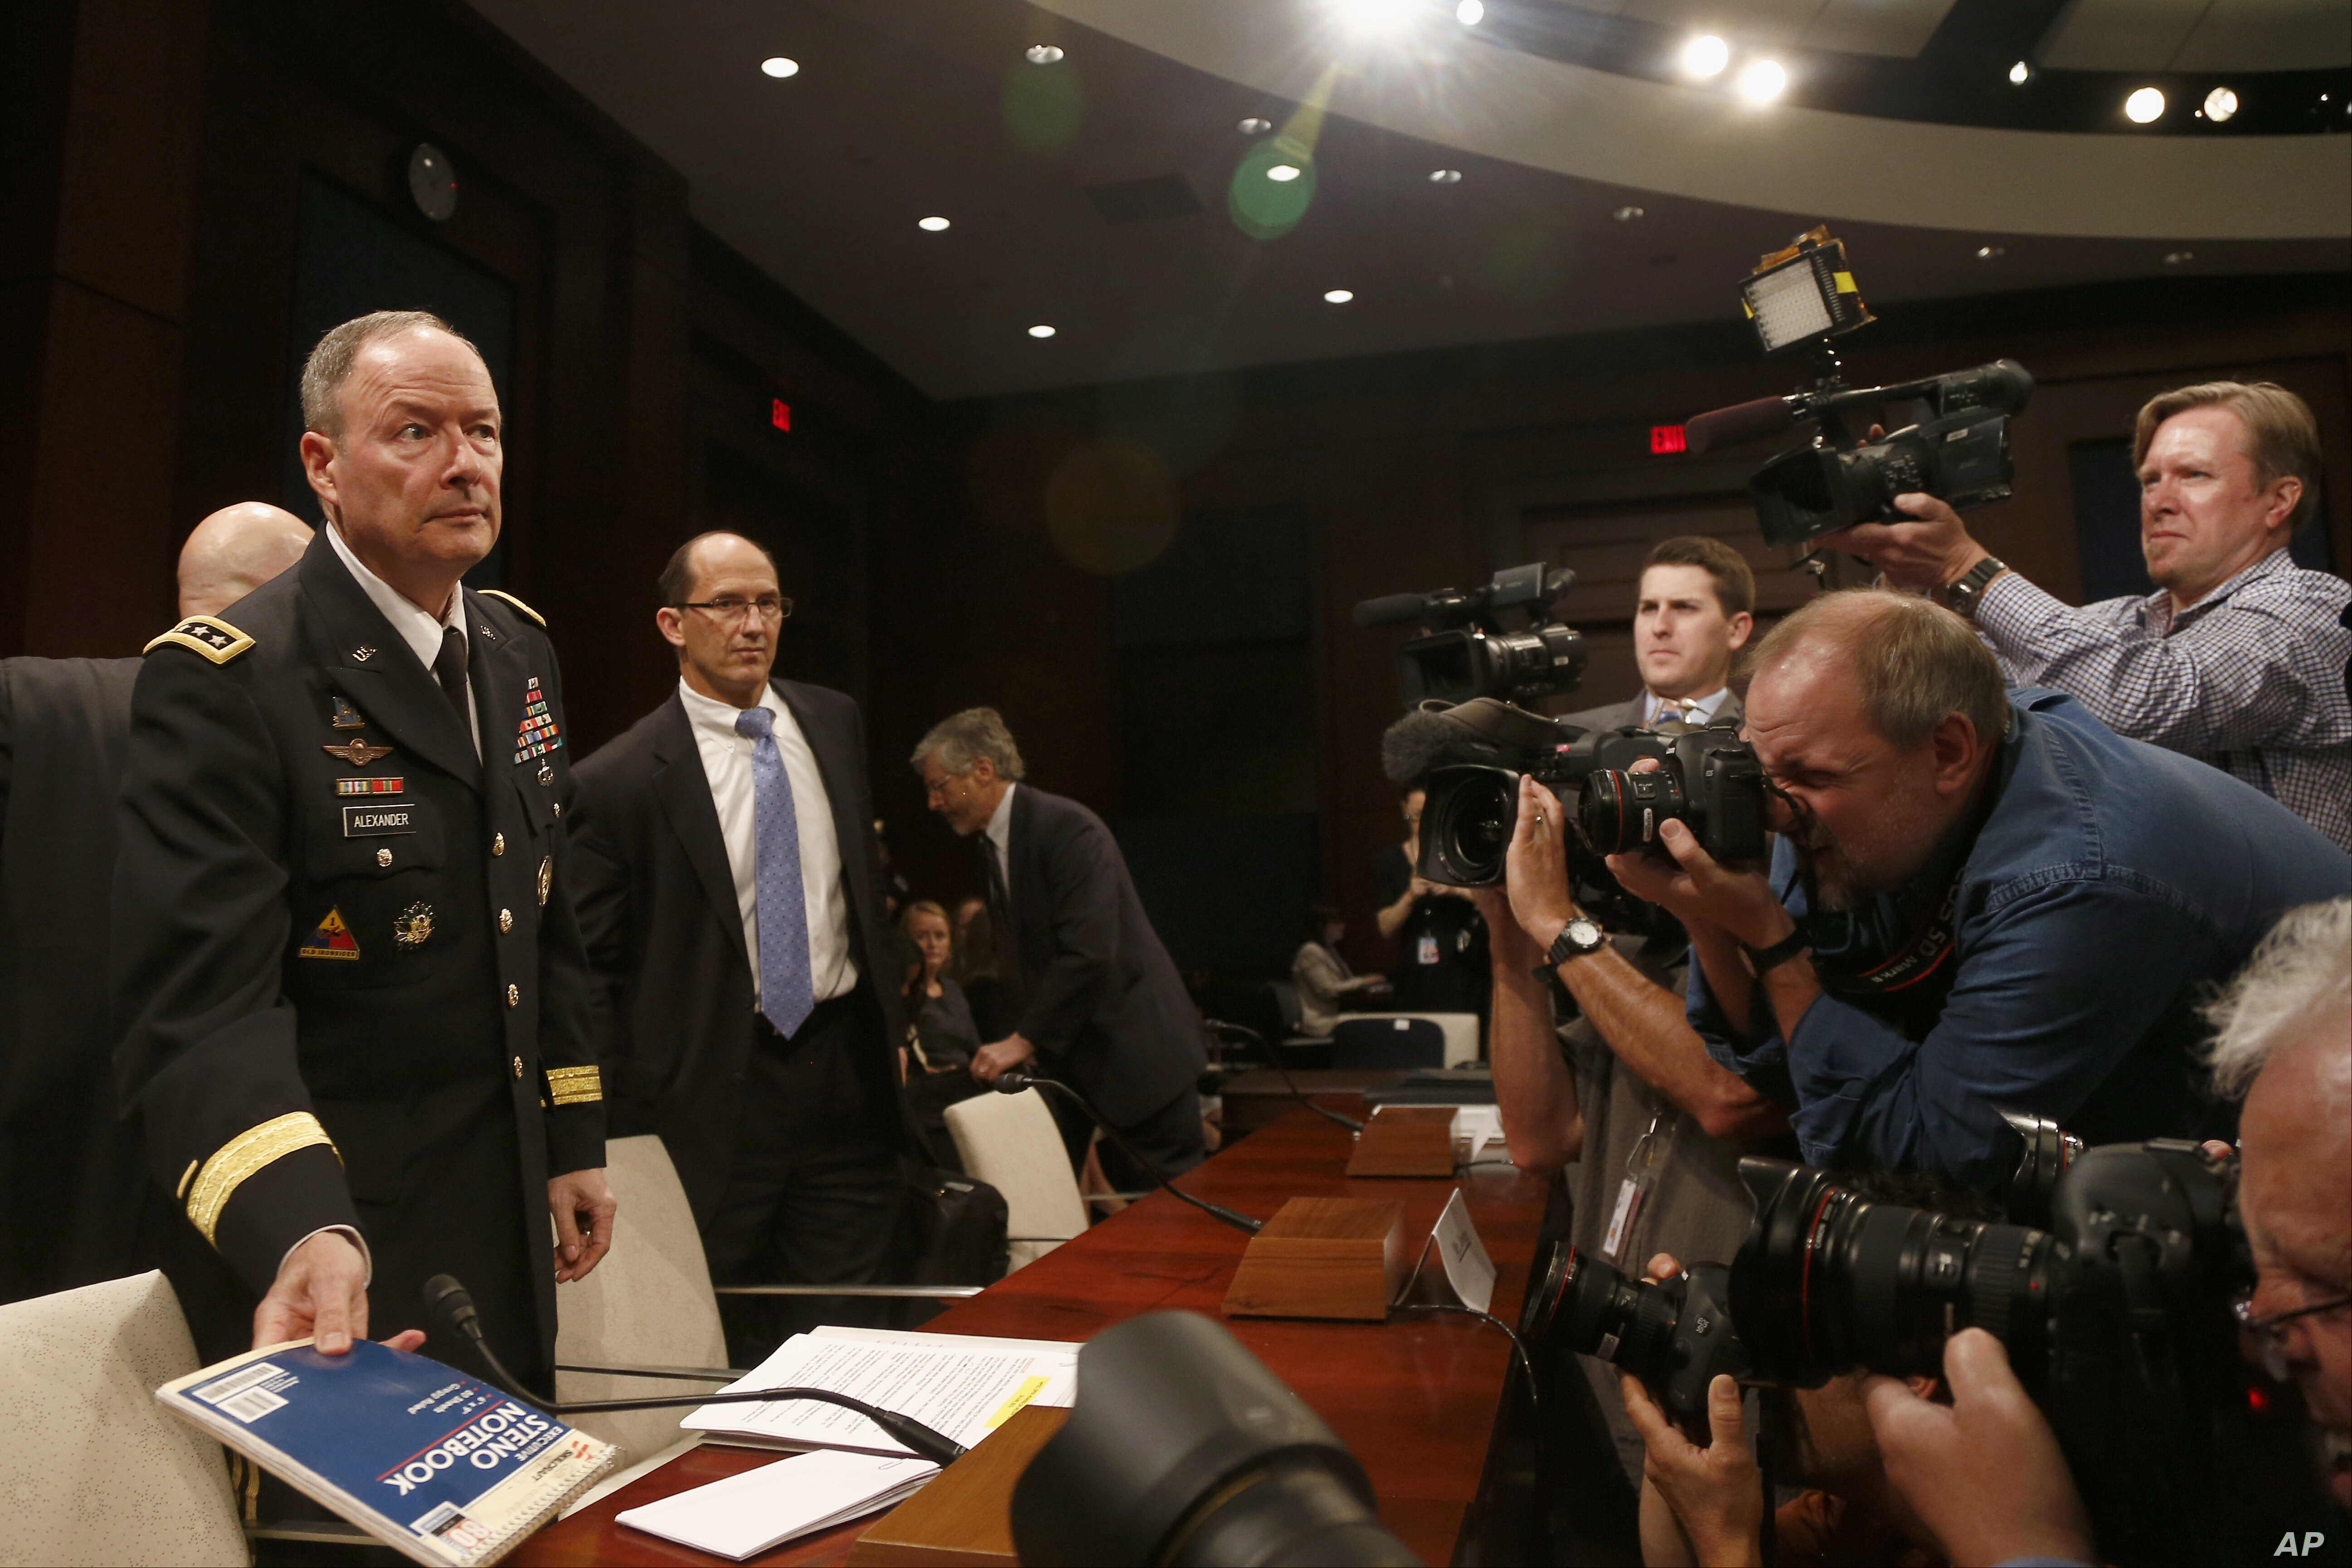 From left: National Security Agency (NSA) Director Gen. Keith B. Alexander; Deputy FBI Director Sean Joyce, and Robert Litt, general counsel to the Office of the Director of National Intelligence (DNI), arrive to testify before the House Intelligence